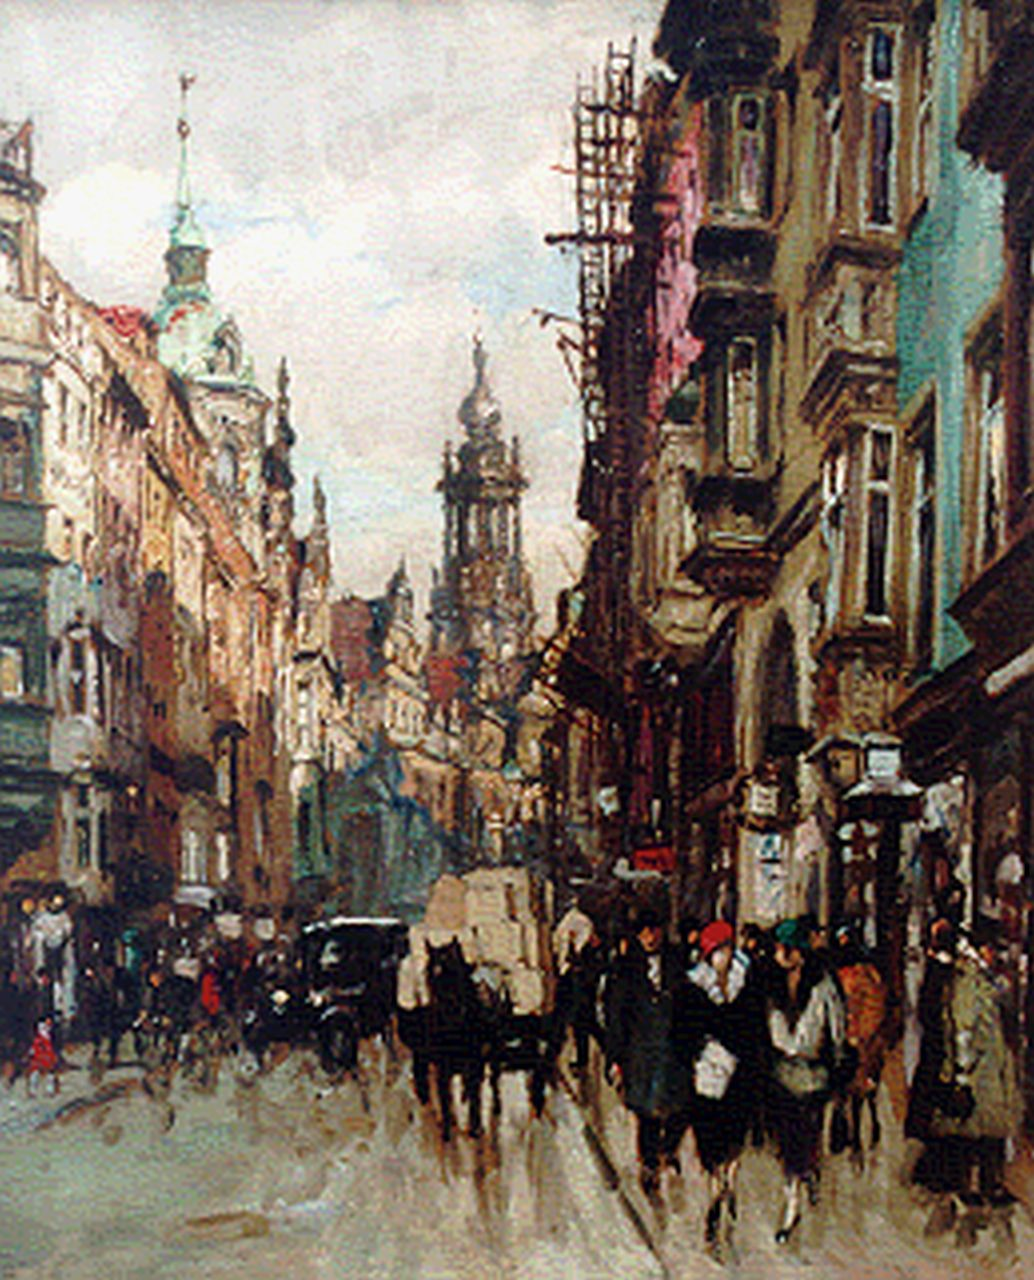 Fritz Beckert | A busy street, Dresden, 53.0 x 44.0 cm, signed l.l. and dated 1924